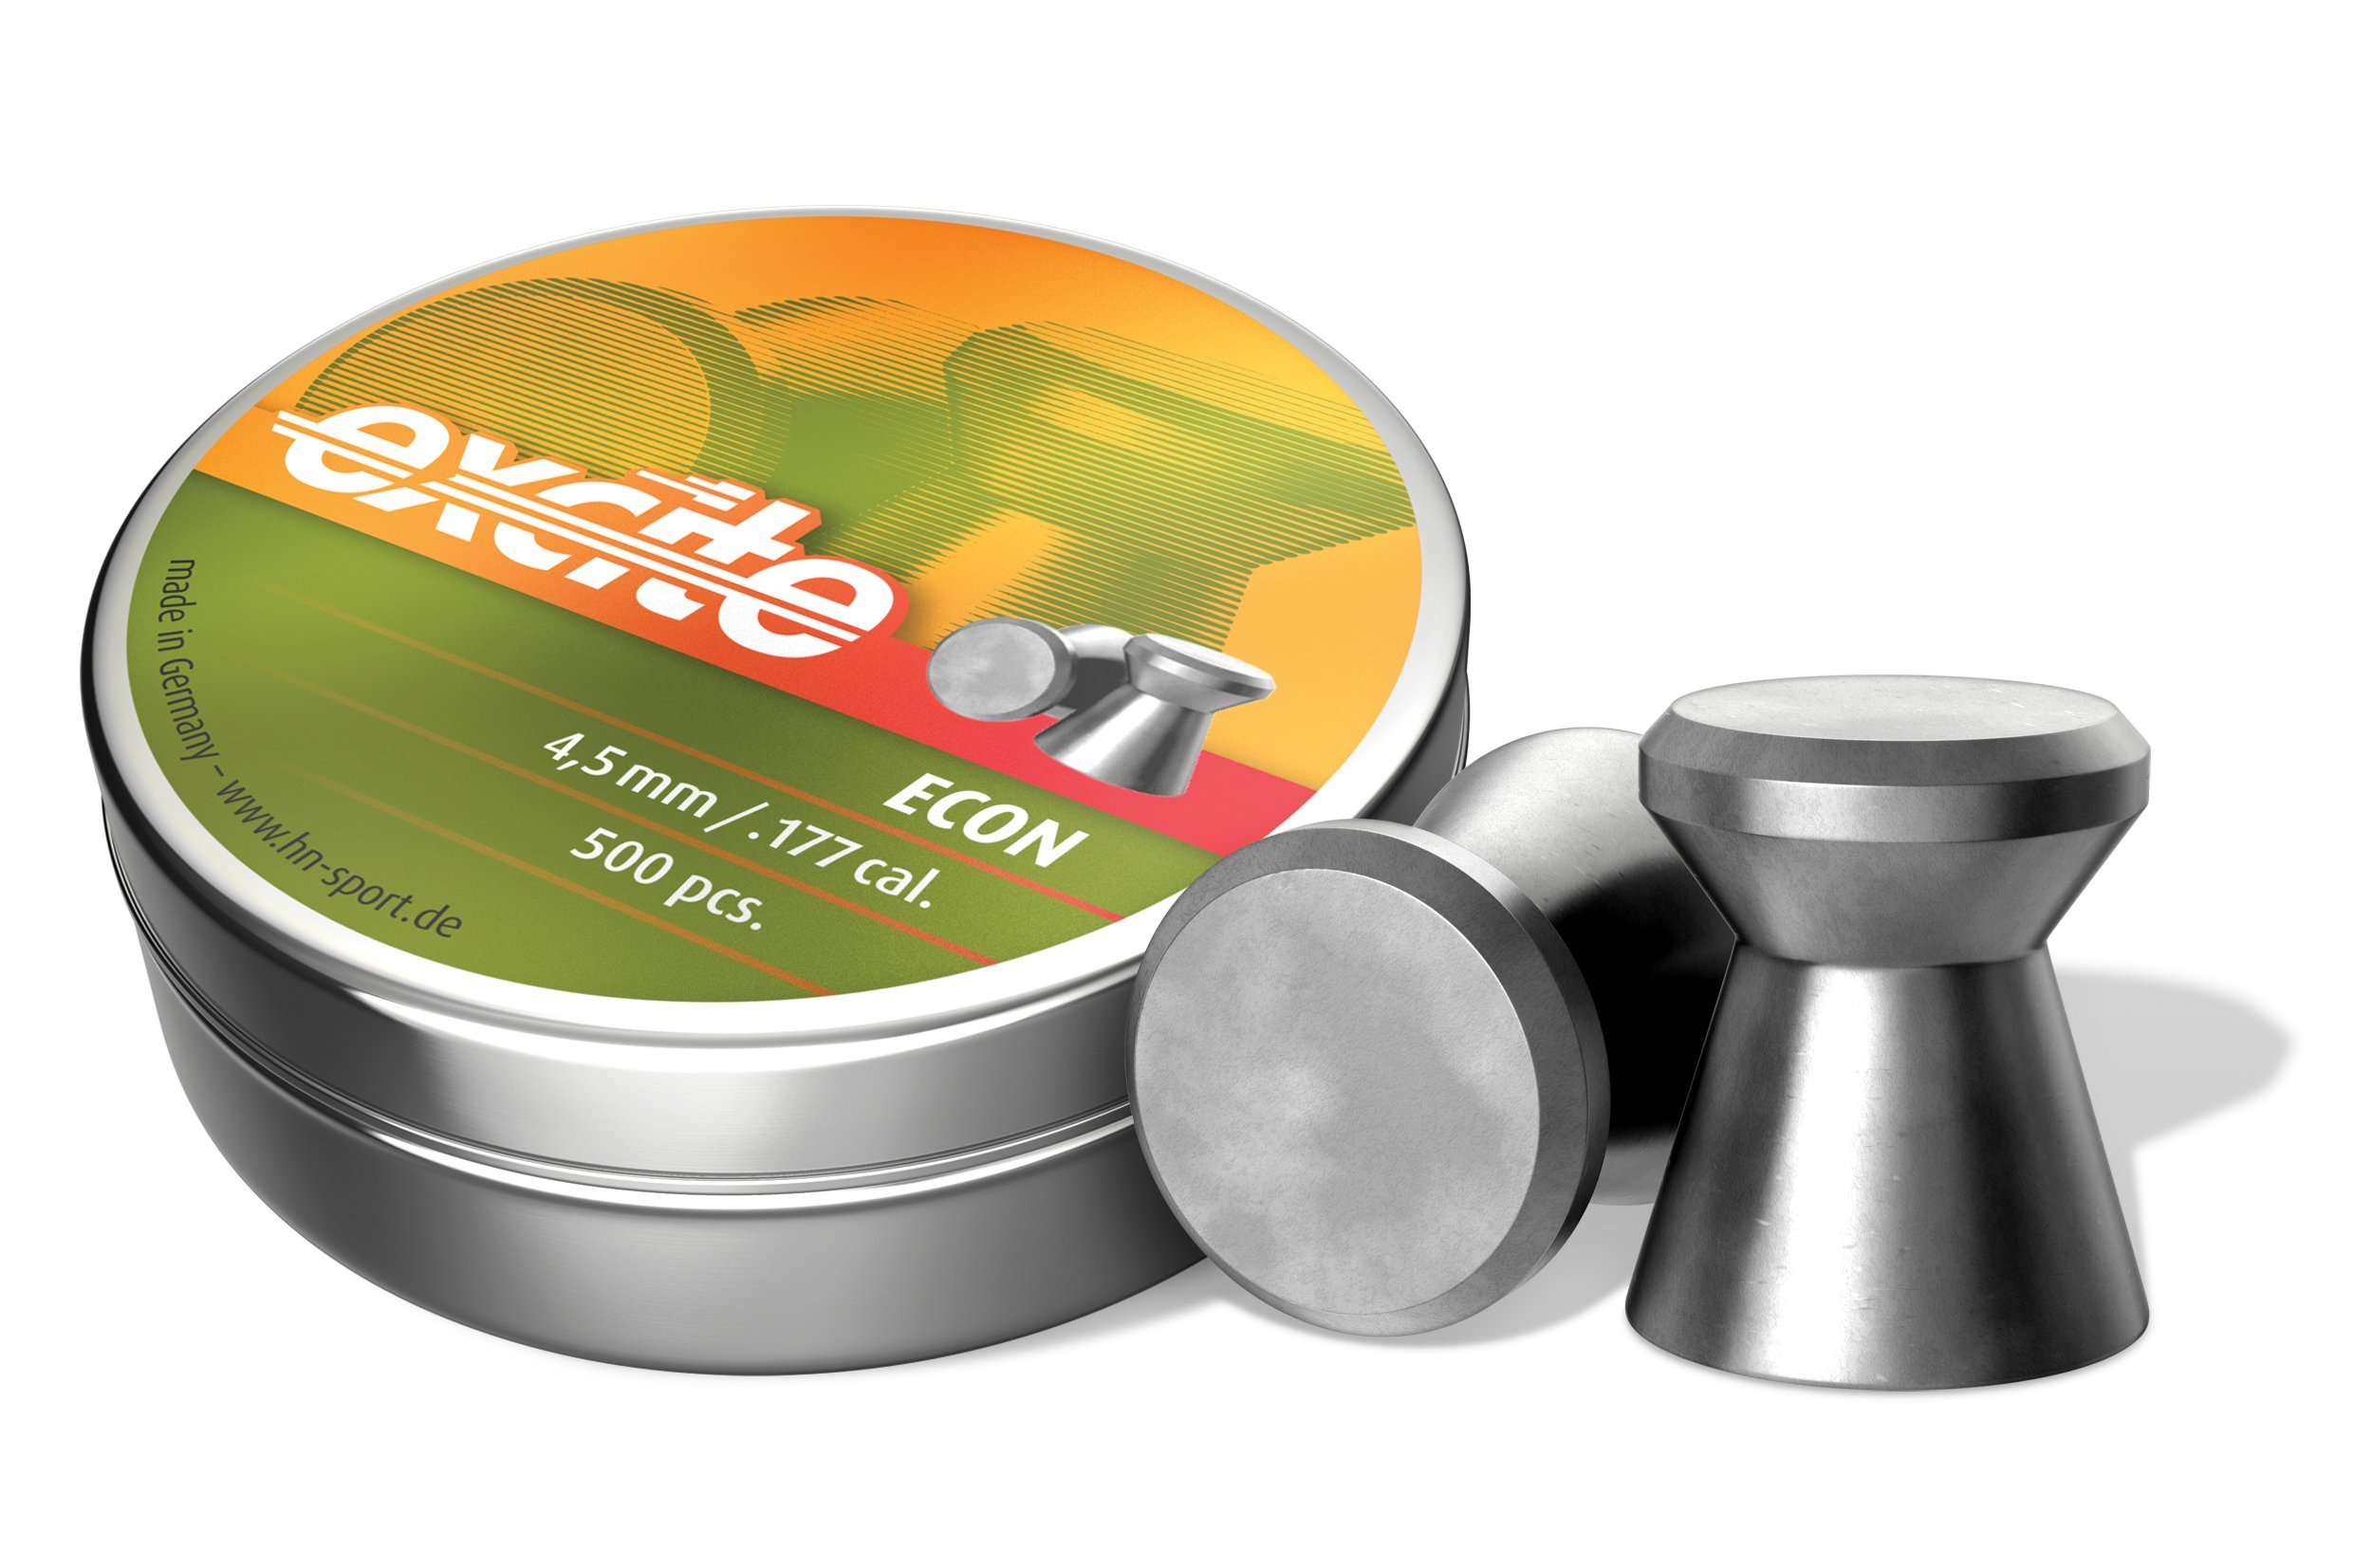 Excite Econ .177 / 4.50 mm airgun pellets from H&N Sport